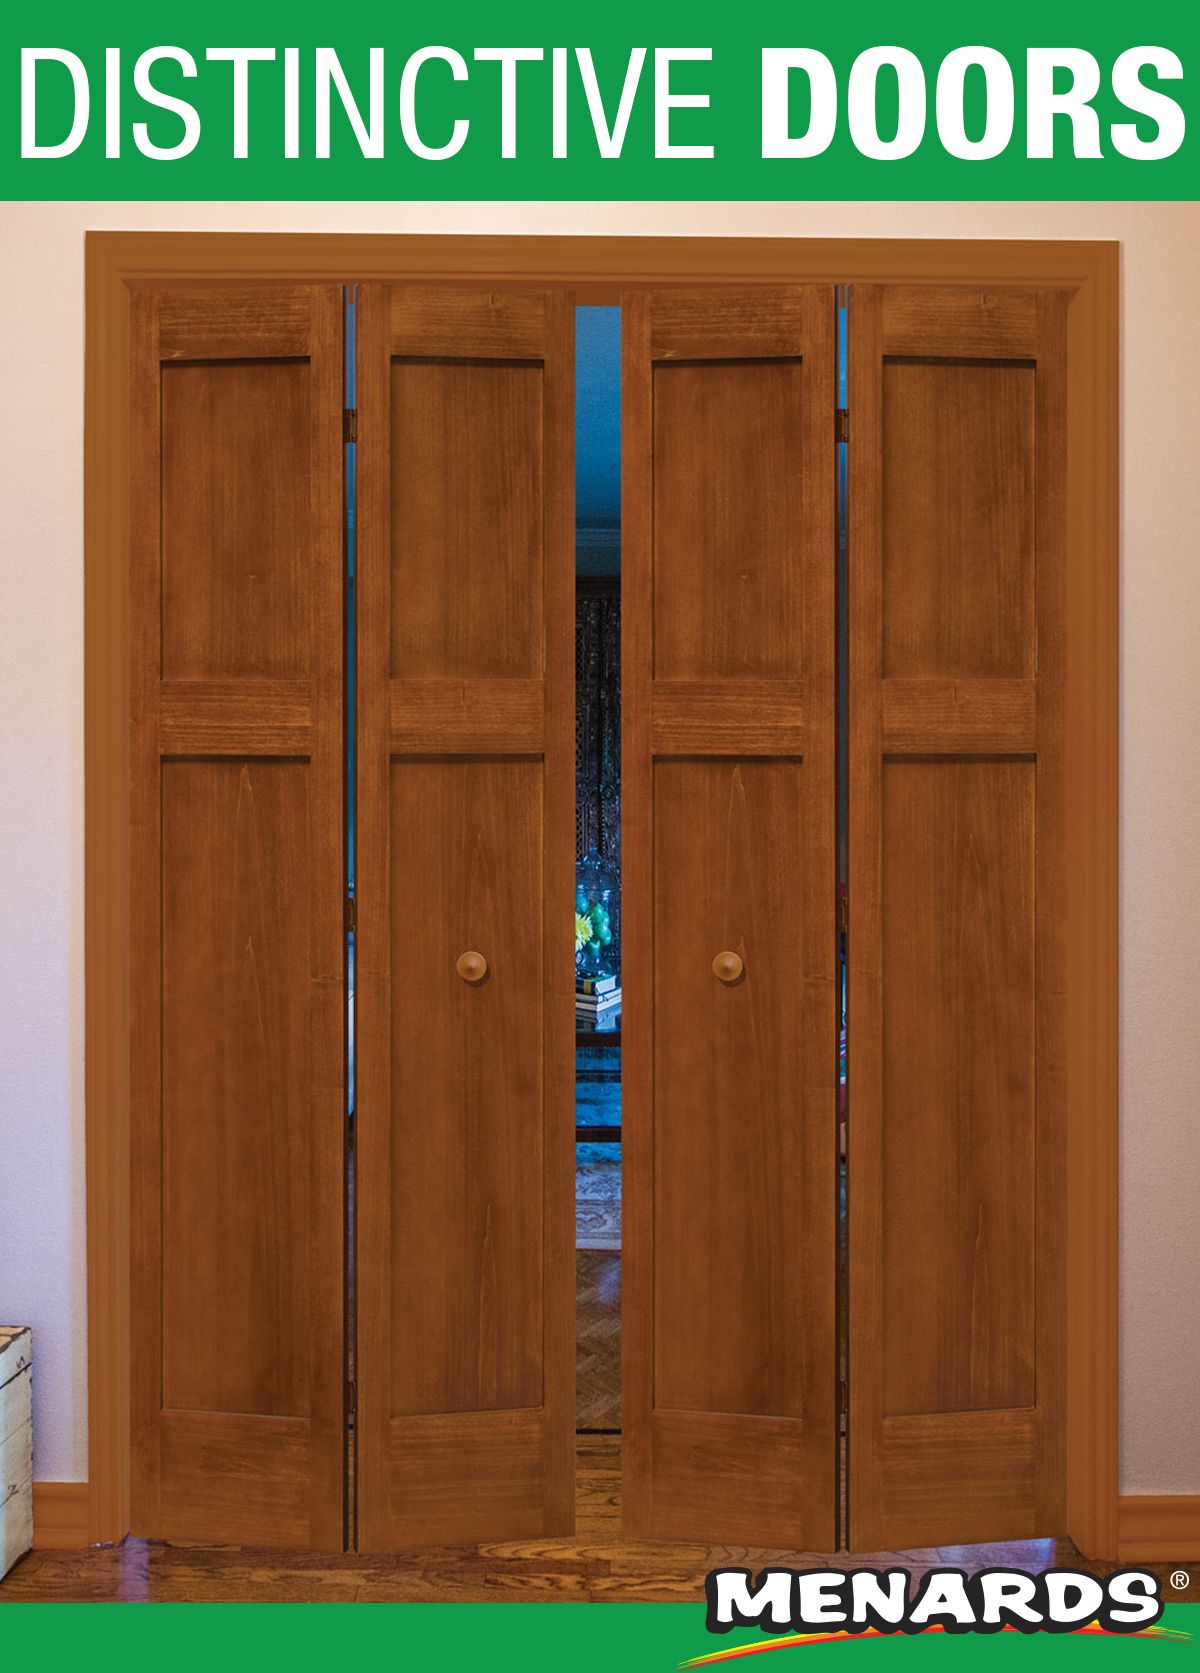 Mastercraft Wood Panel Doors Are A Tried And True Classic This Three Panel Bi Fold Door Comes Complete With A Prepaint Bifold Doors Wood Paneling Panel Doors